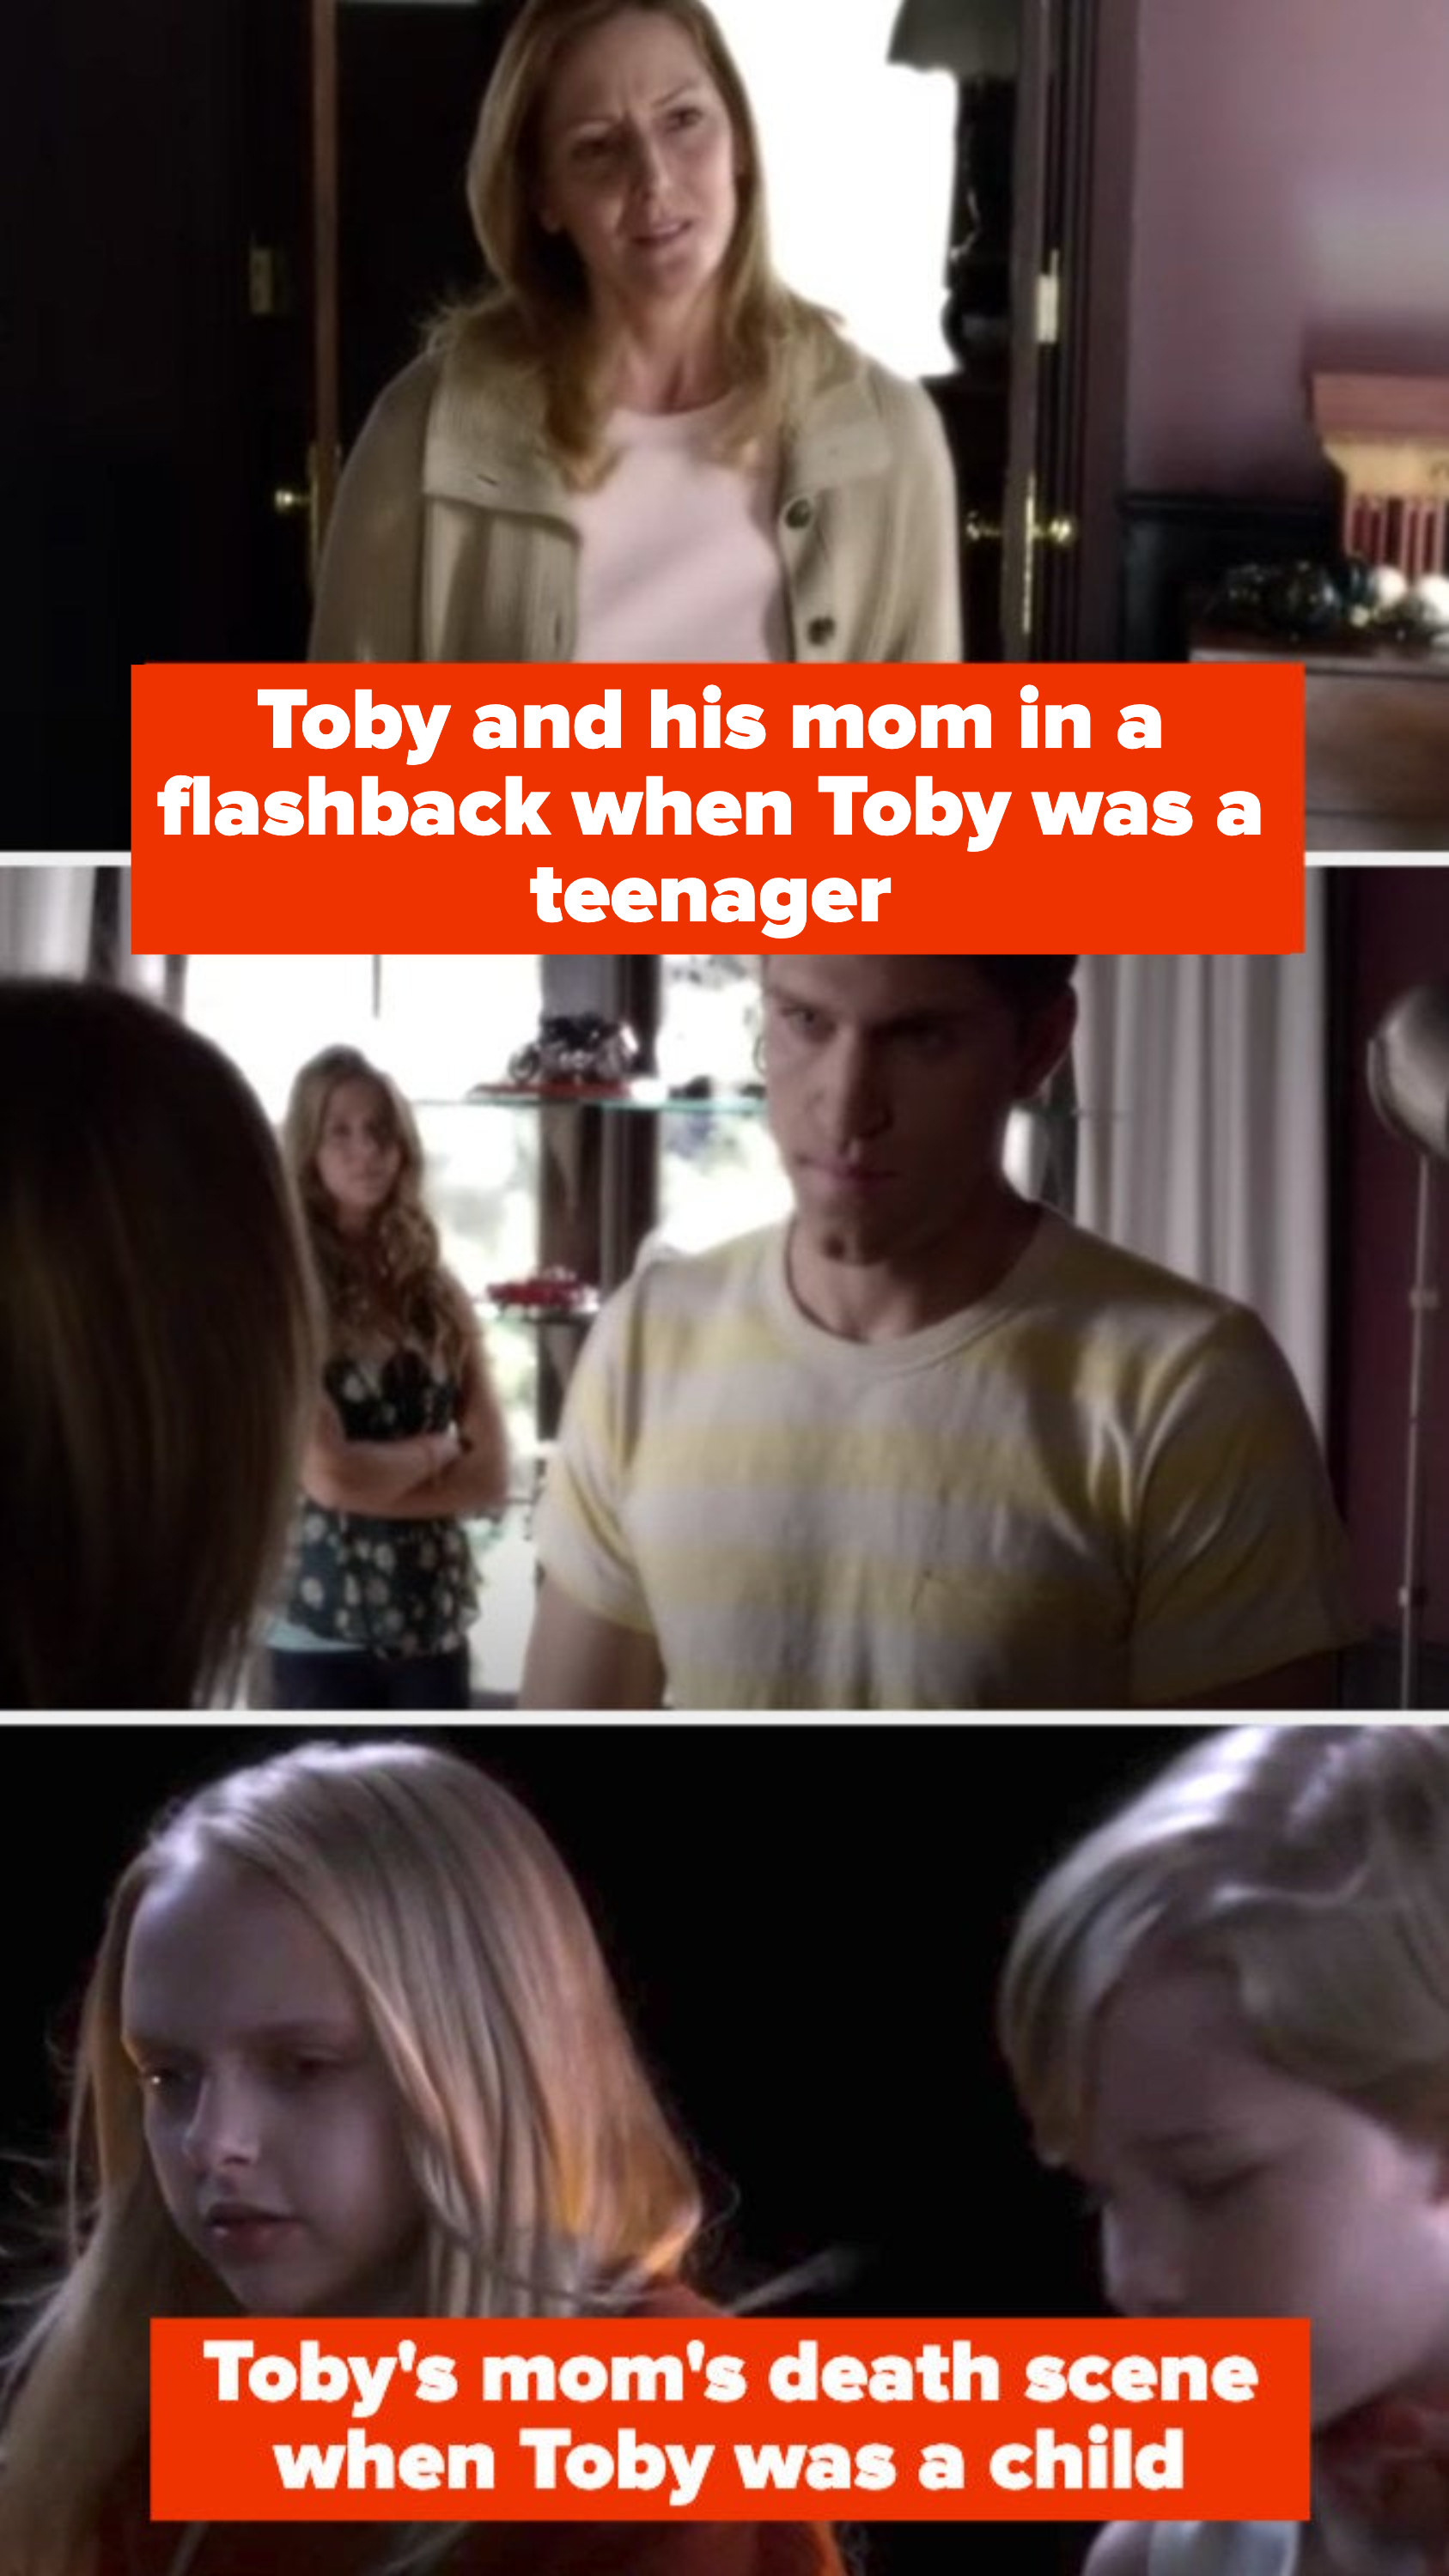 Toby sees his mom when he's a teenager, but then a flashback establishes his mom died when he was a kid